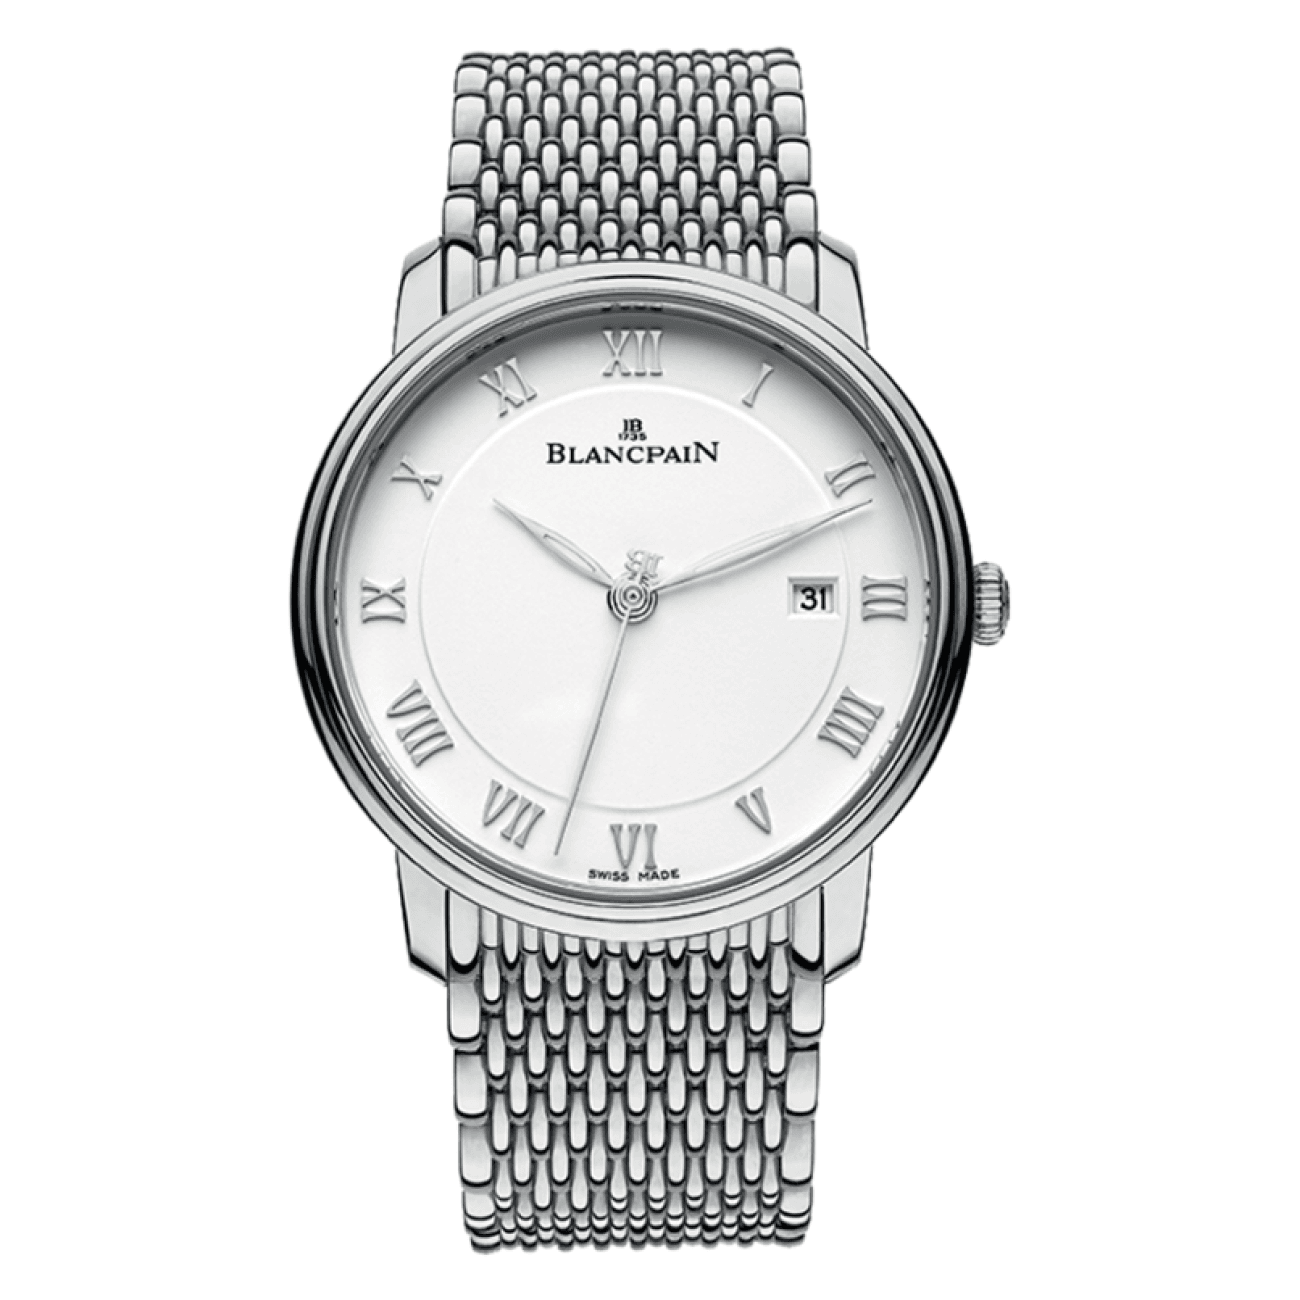 Blancpain Watches - Villeret Ultraplate 6651 1127 MMB | Manfredi Jewels